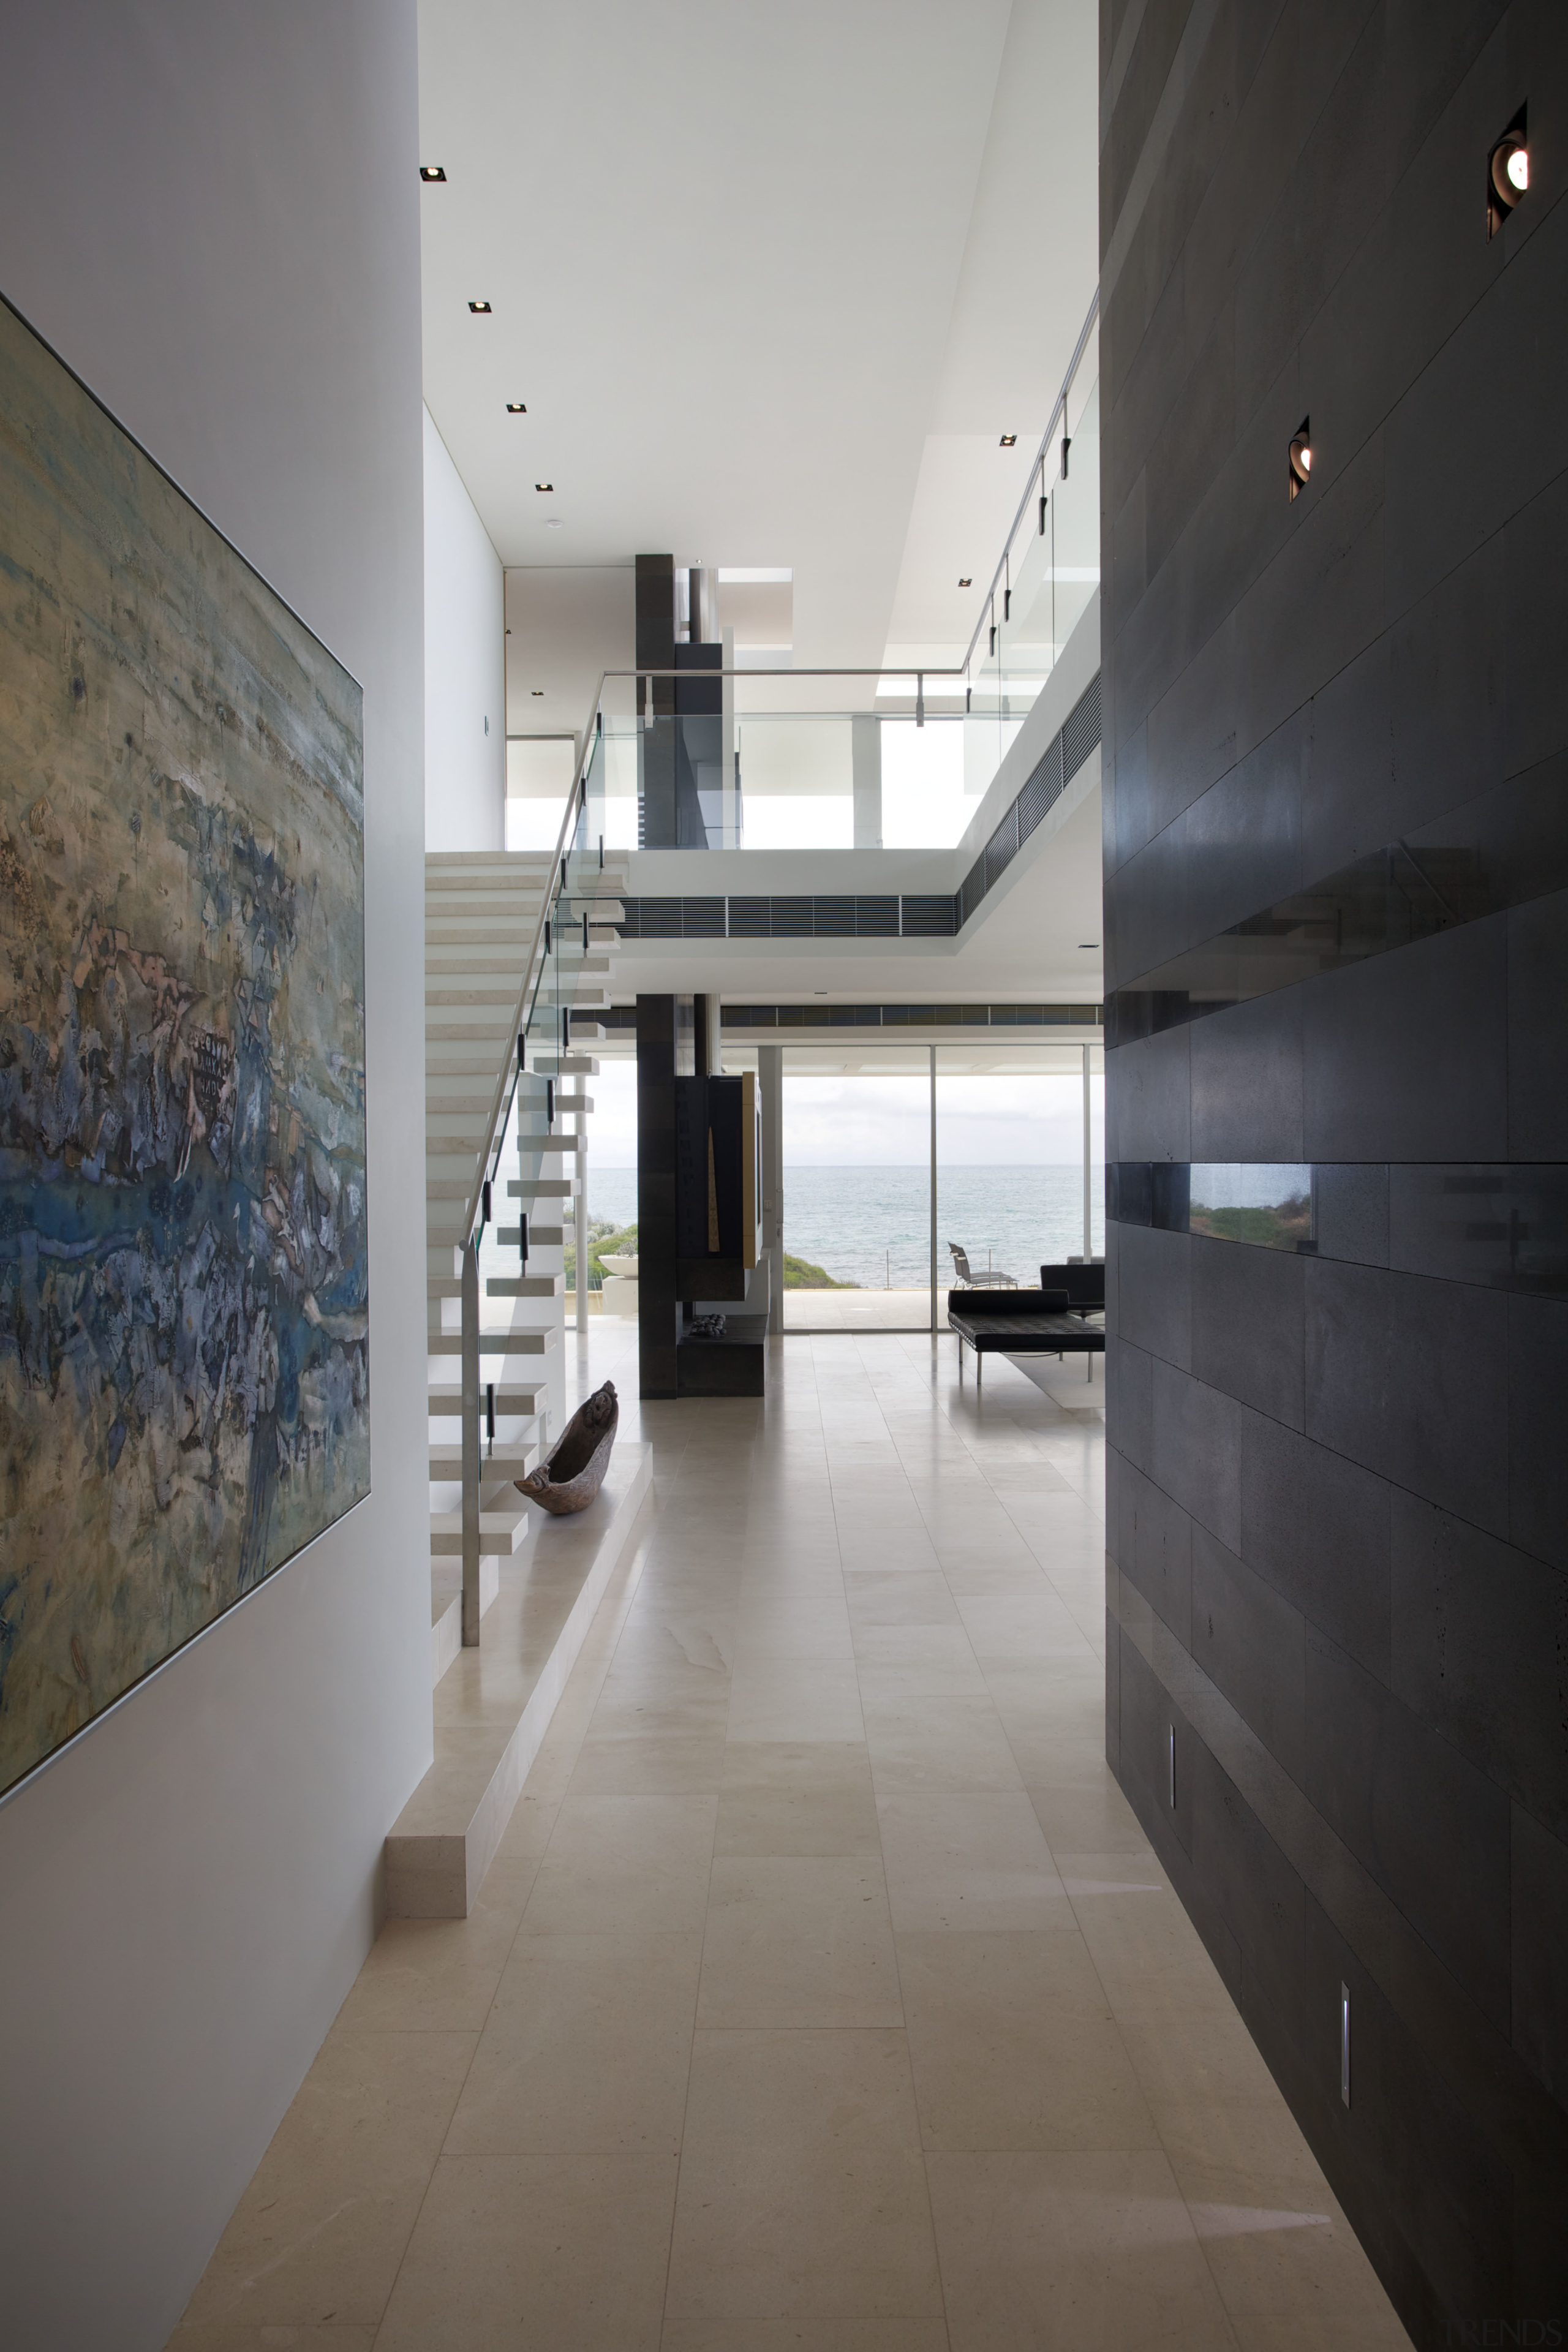 As you enter this beachside home, it opens apartment, architecture, ceiling, daylighting, floor, flooring, glass, house, interior design, lobby, tile, wood flooring, gray, black